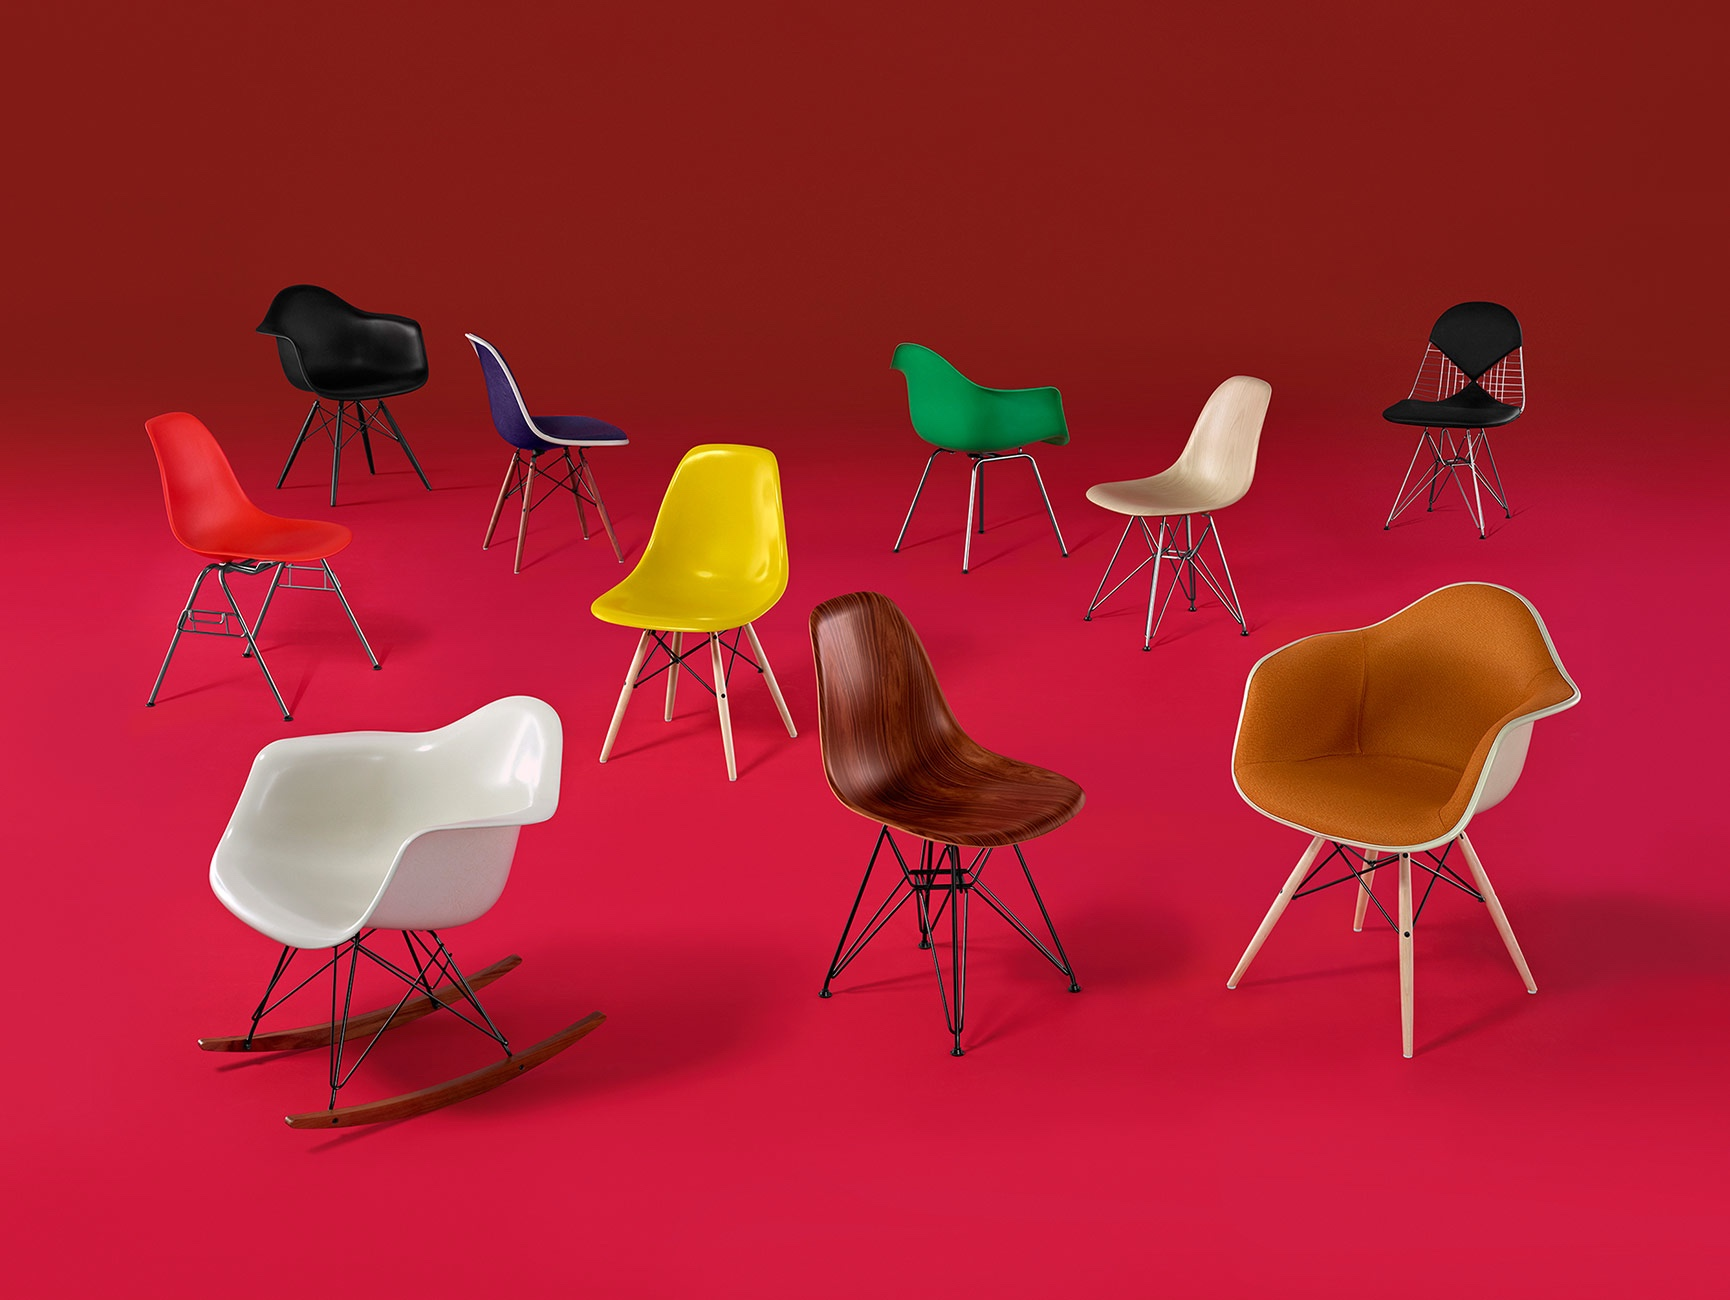 Eames Shell Chair Group. Designed by Charles and Ray Eames. Image © 2016 Herman Miller, Inc.